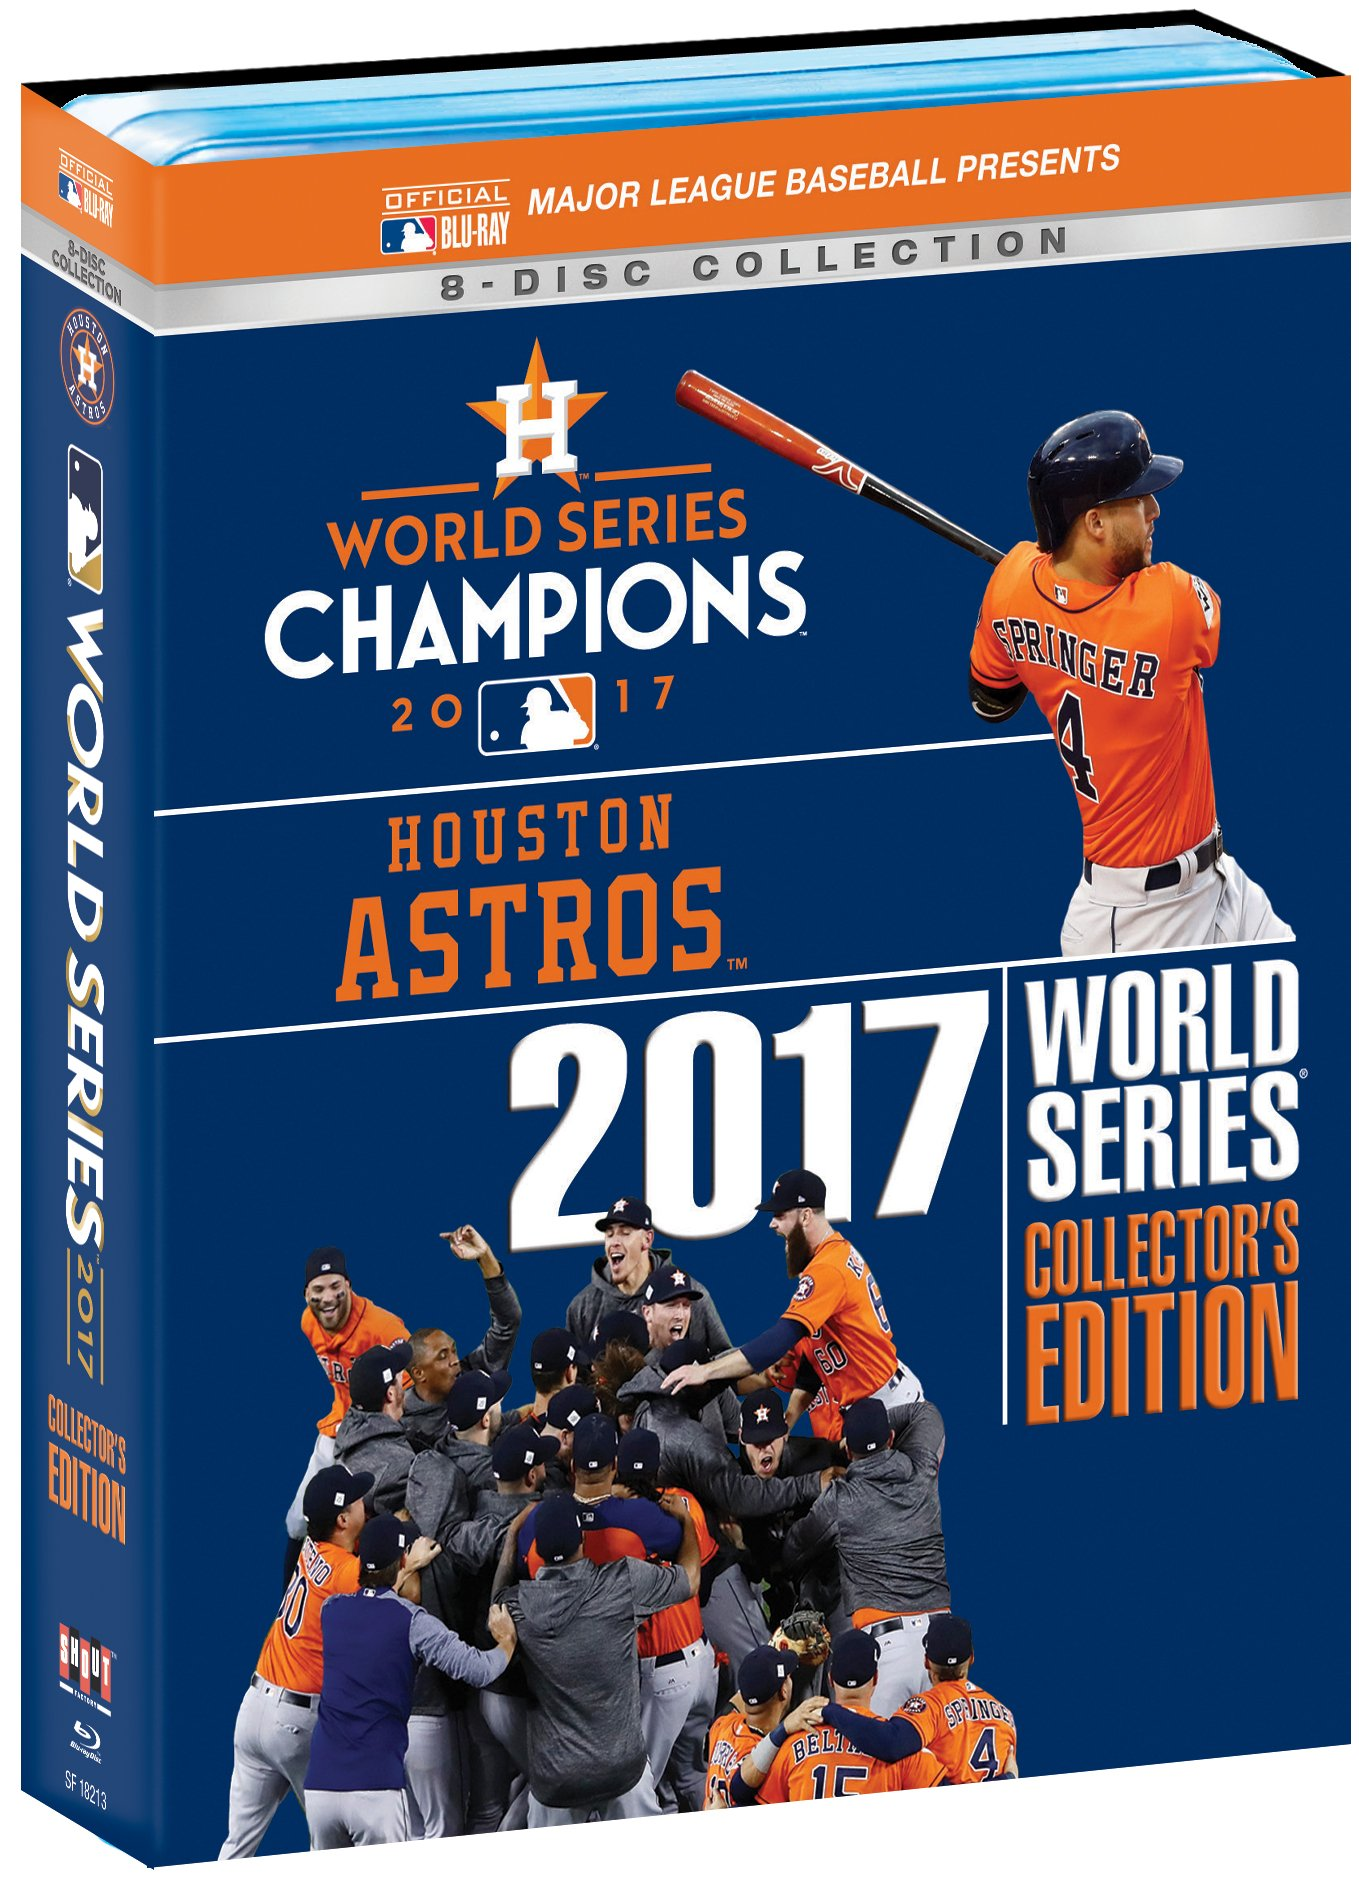 Houston Astros 2017 World Series Collector's Edition [Blu-ray]